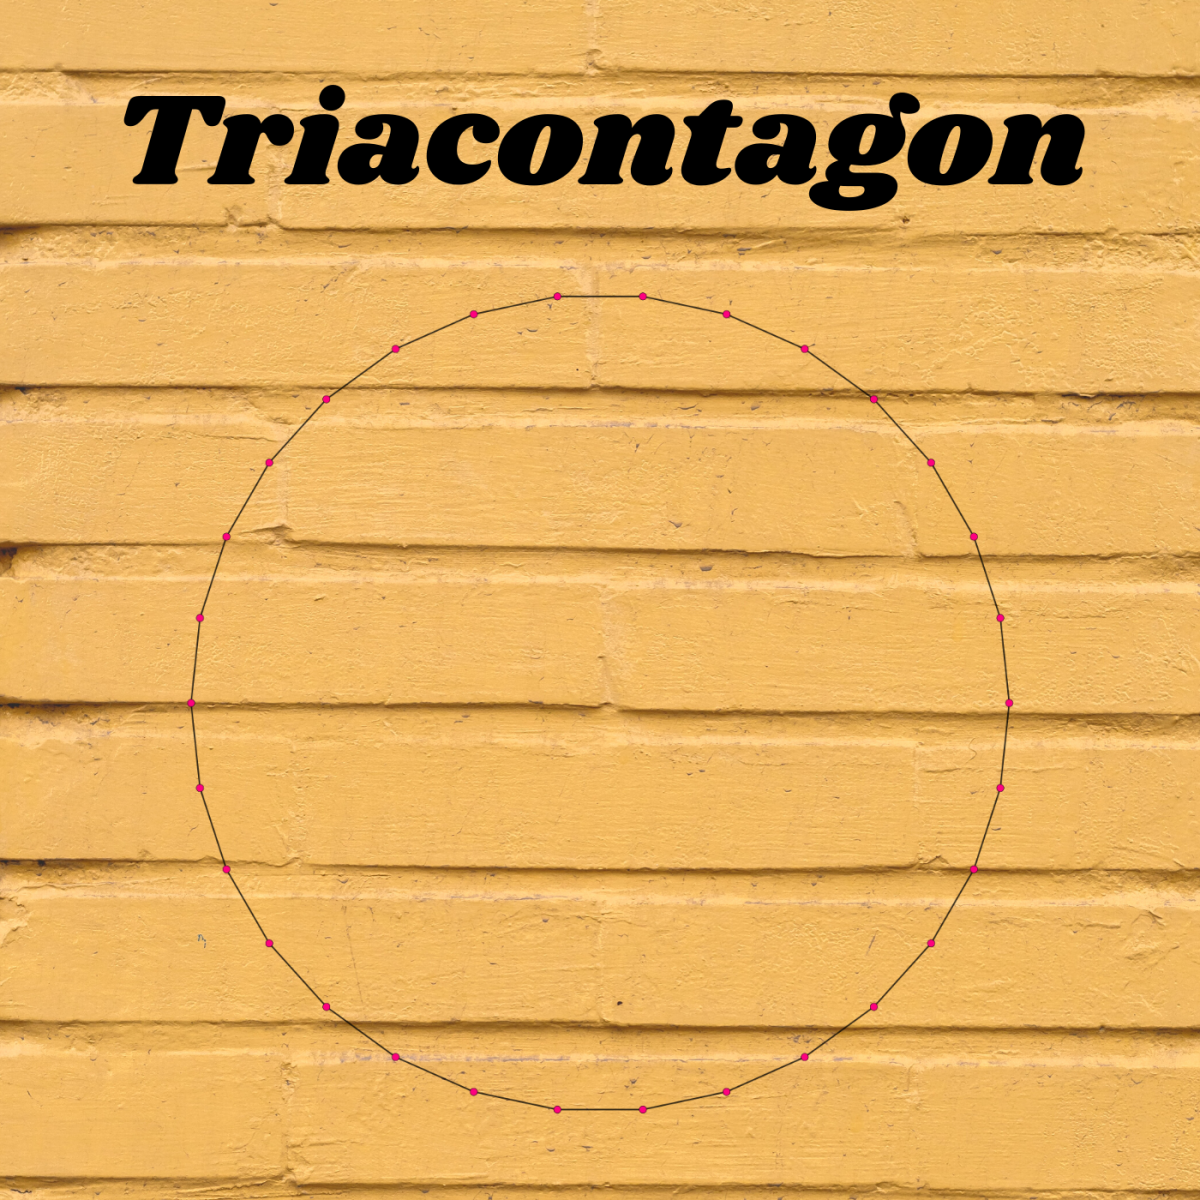 Triacontagons have 30 sides—so many that at first glance, they look like circles.